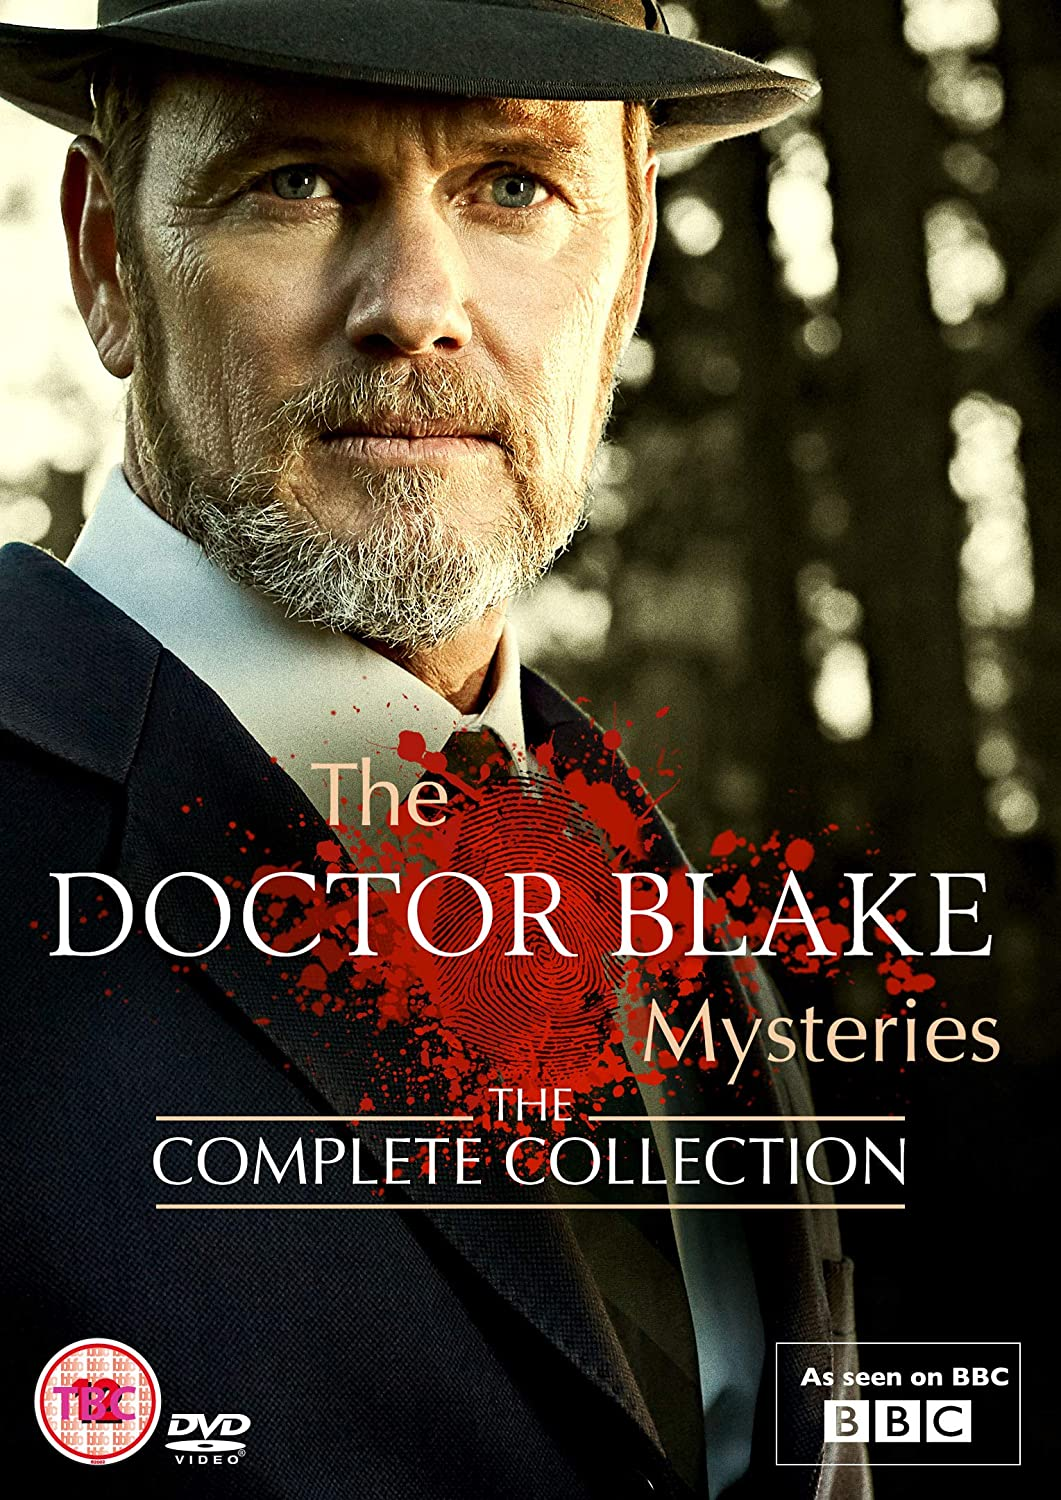 The Doctor Blake Mysteries: Complete Collection (Series 1-5 & Ghost Stories)